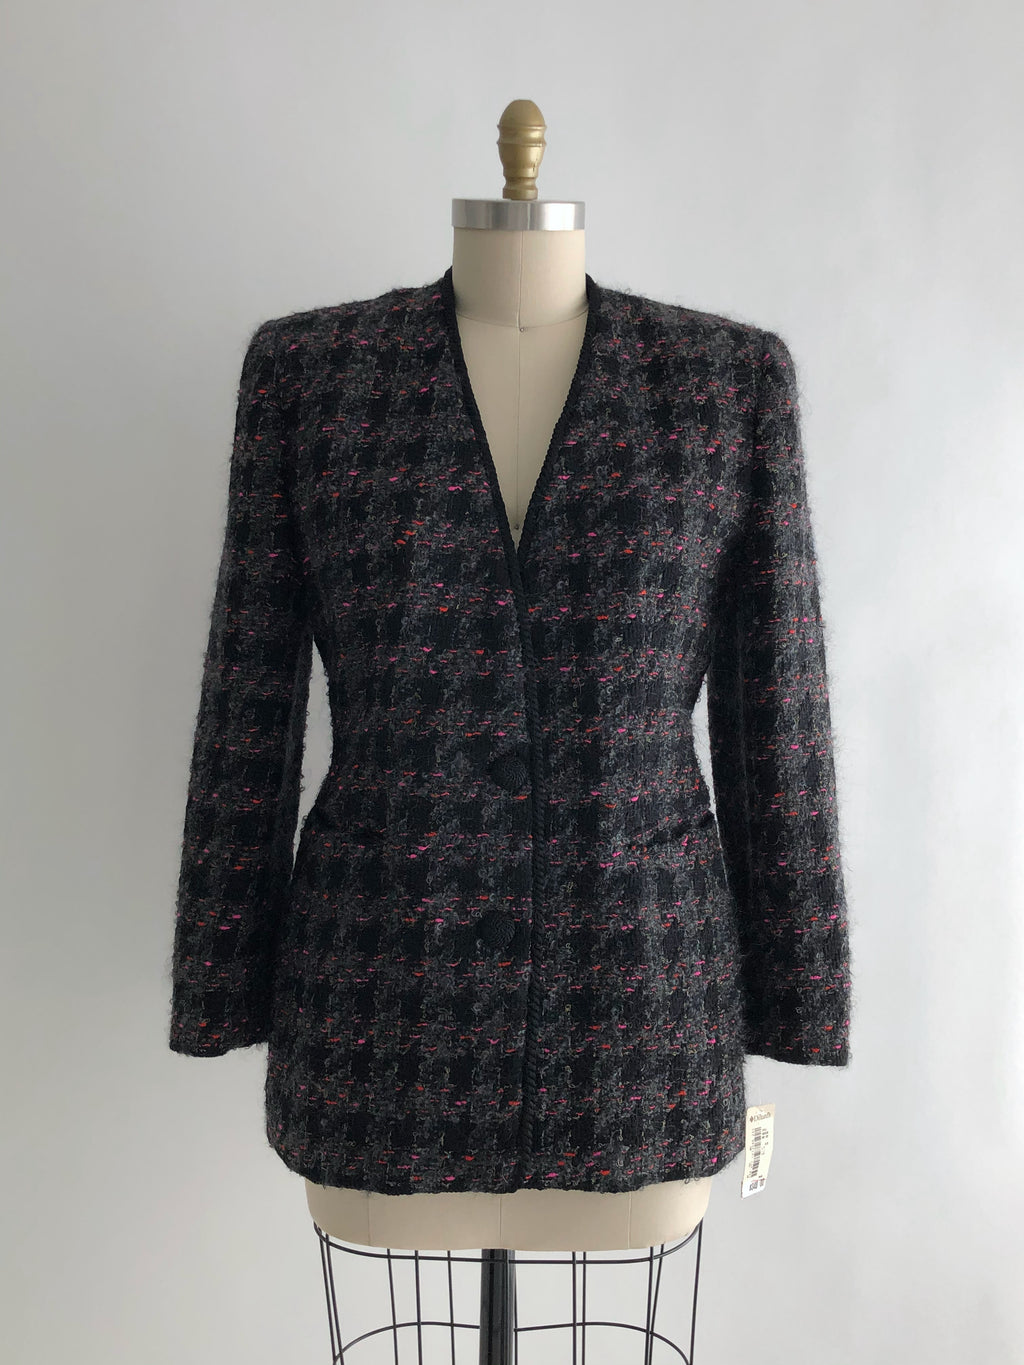 Vintage 80s NOS Black Wool Plaid Blazer by Dana Buchman